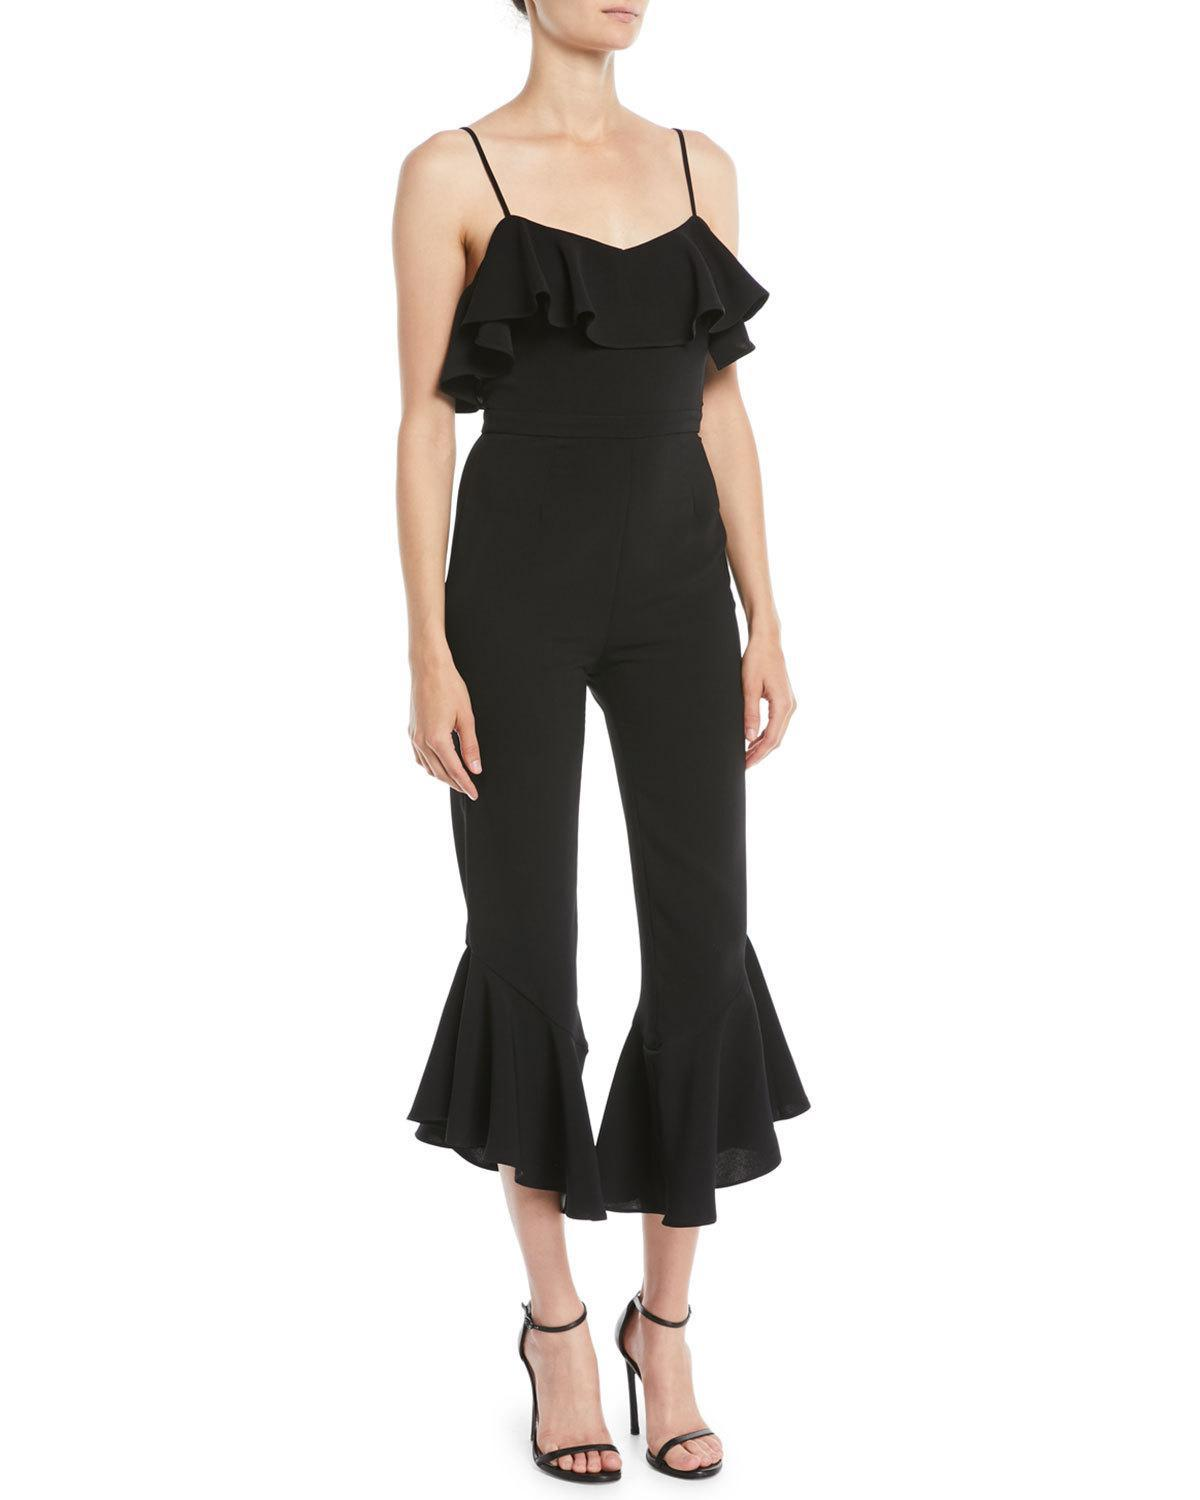 f17bcd67307ab Lyst - Likely Sansone Cropped Ruffle Jumpsuit in Black - Save 50%